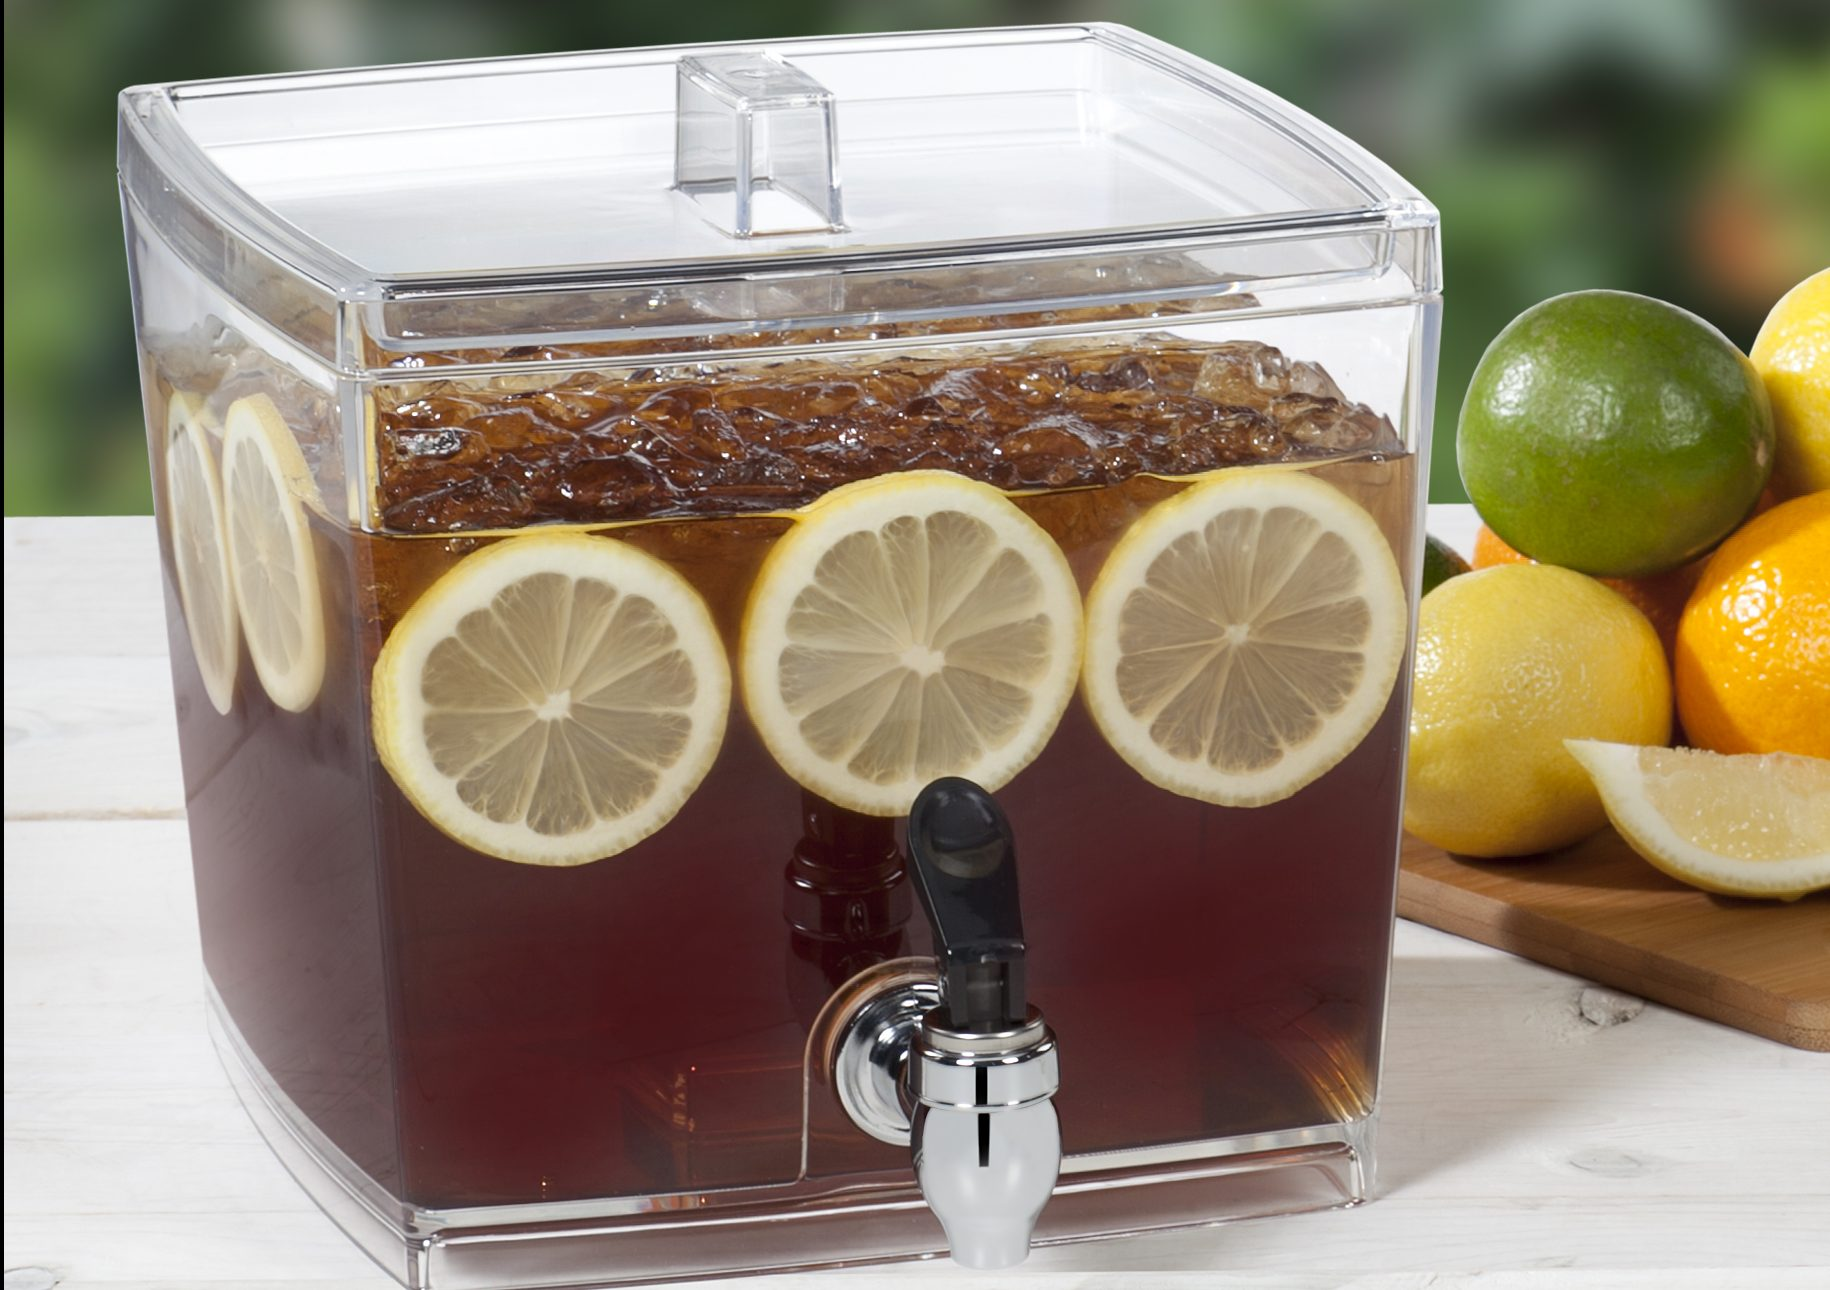 Beverage dispensers come in a variety of shapes and sizes. This  1.5-gallon, BPA-free beverage dispenser is from CreativeWare.